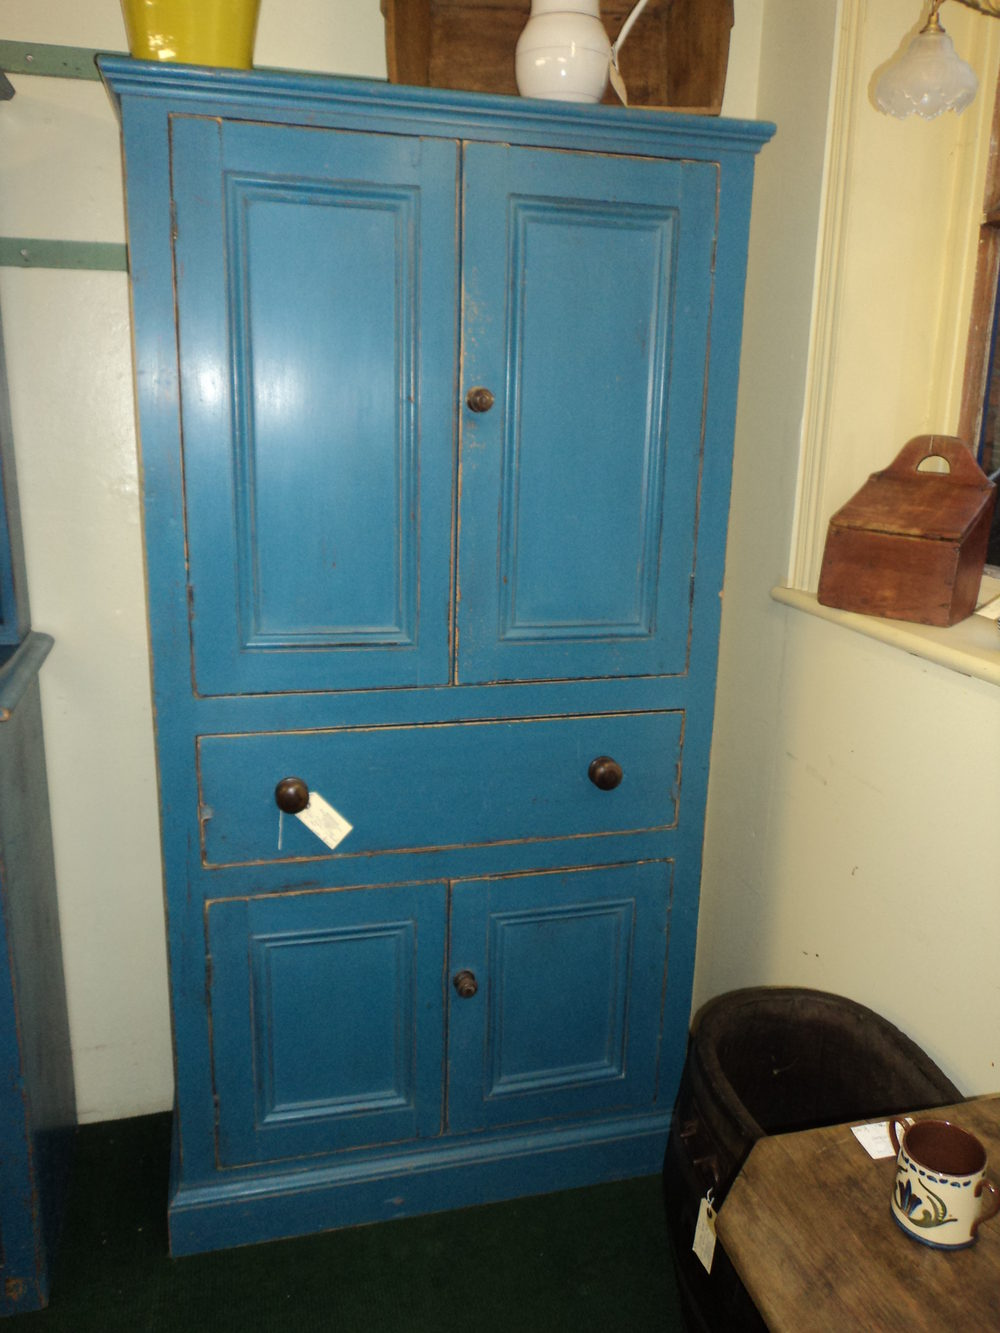 Painted Pine Cupboard Antique Cupboards - Painted Pine Cupboard - Antiques Atlas